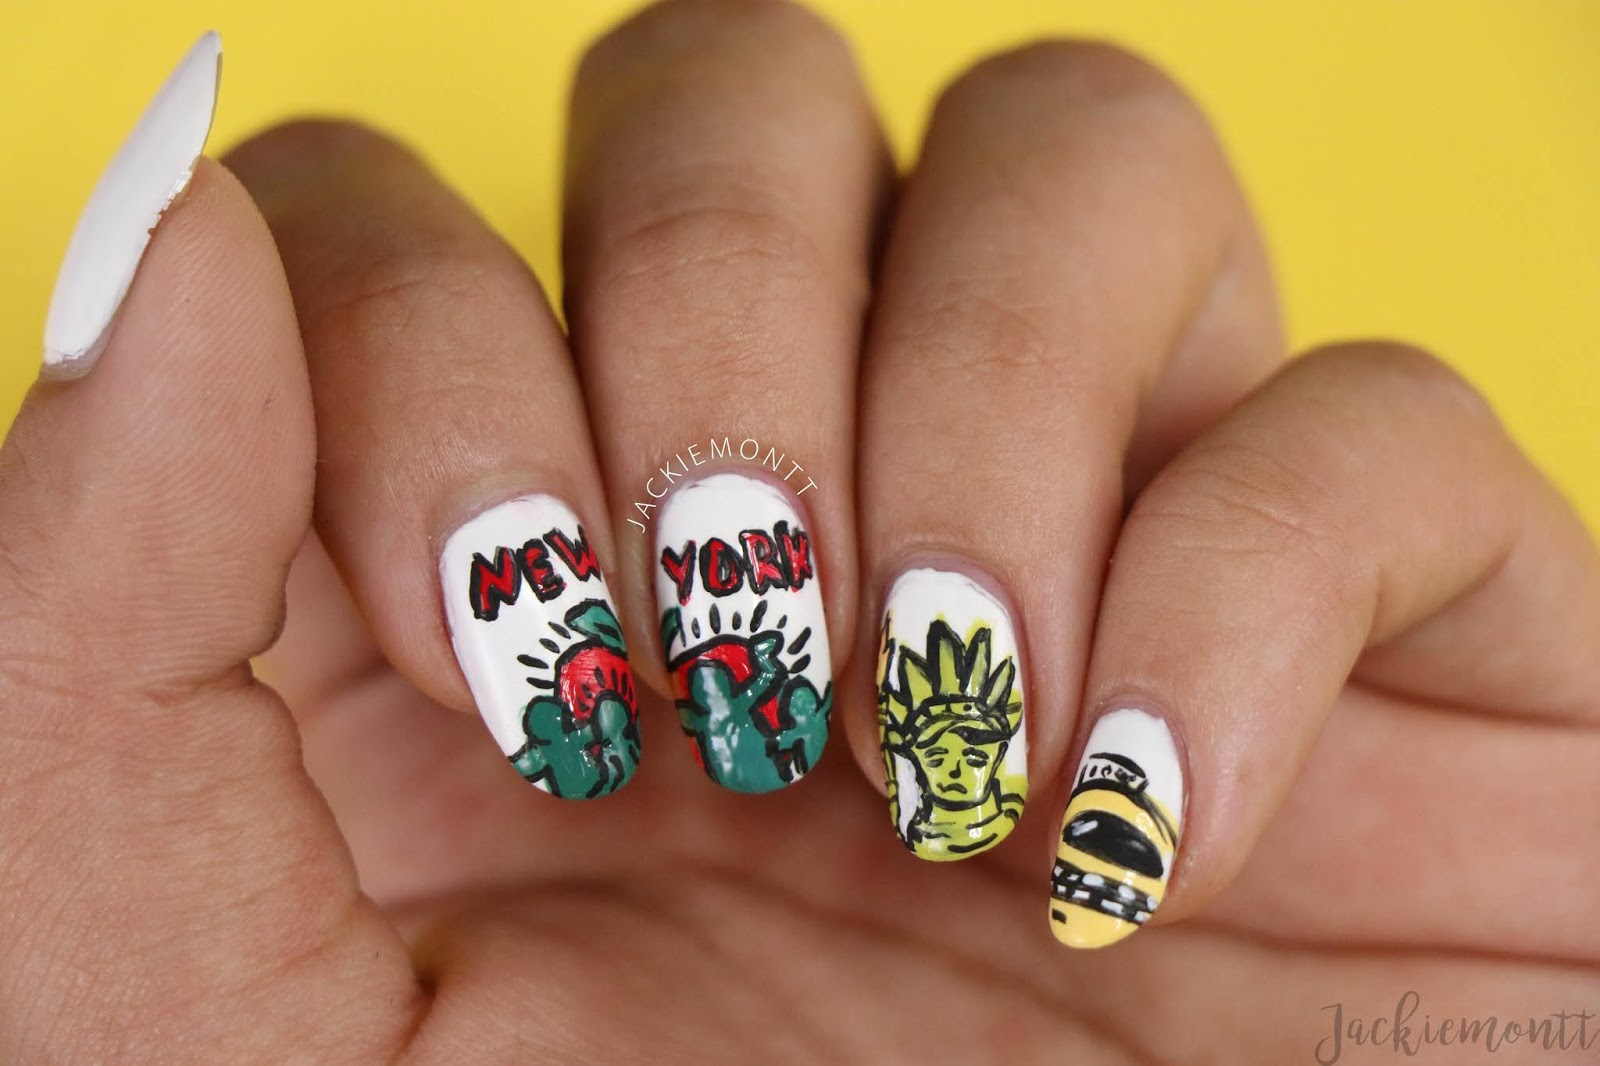 New York Nails Inspired by Keith Haring - JACKIEMONTT